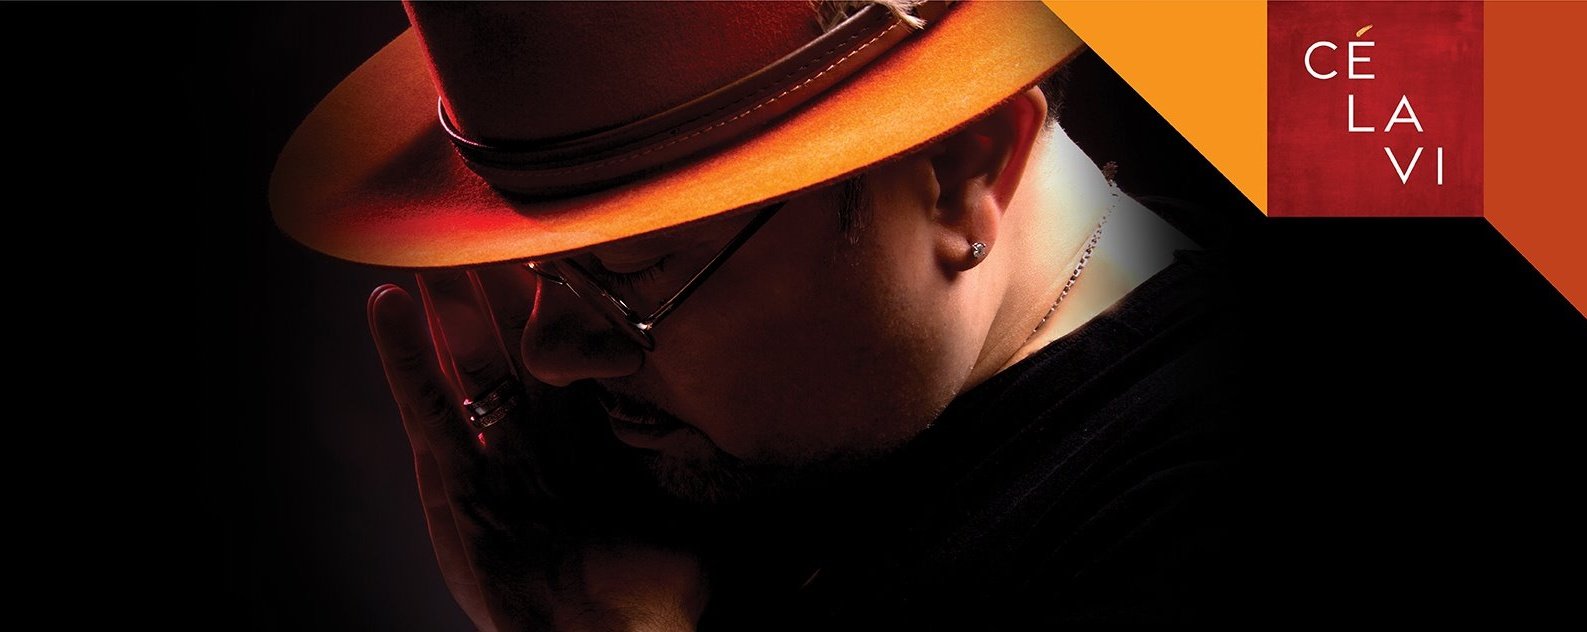 CÉ LA VI Presents Grammy Award-Winning DJ And Producer Louie Vega